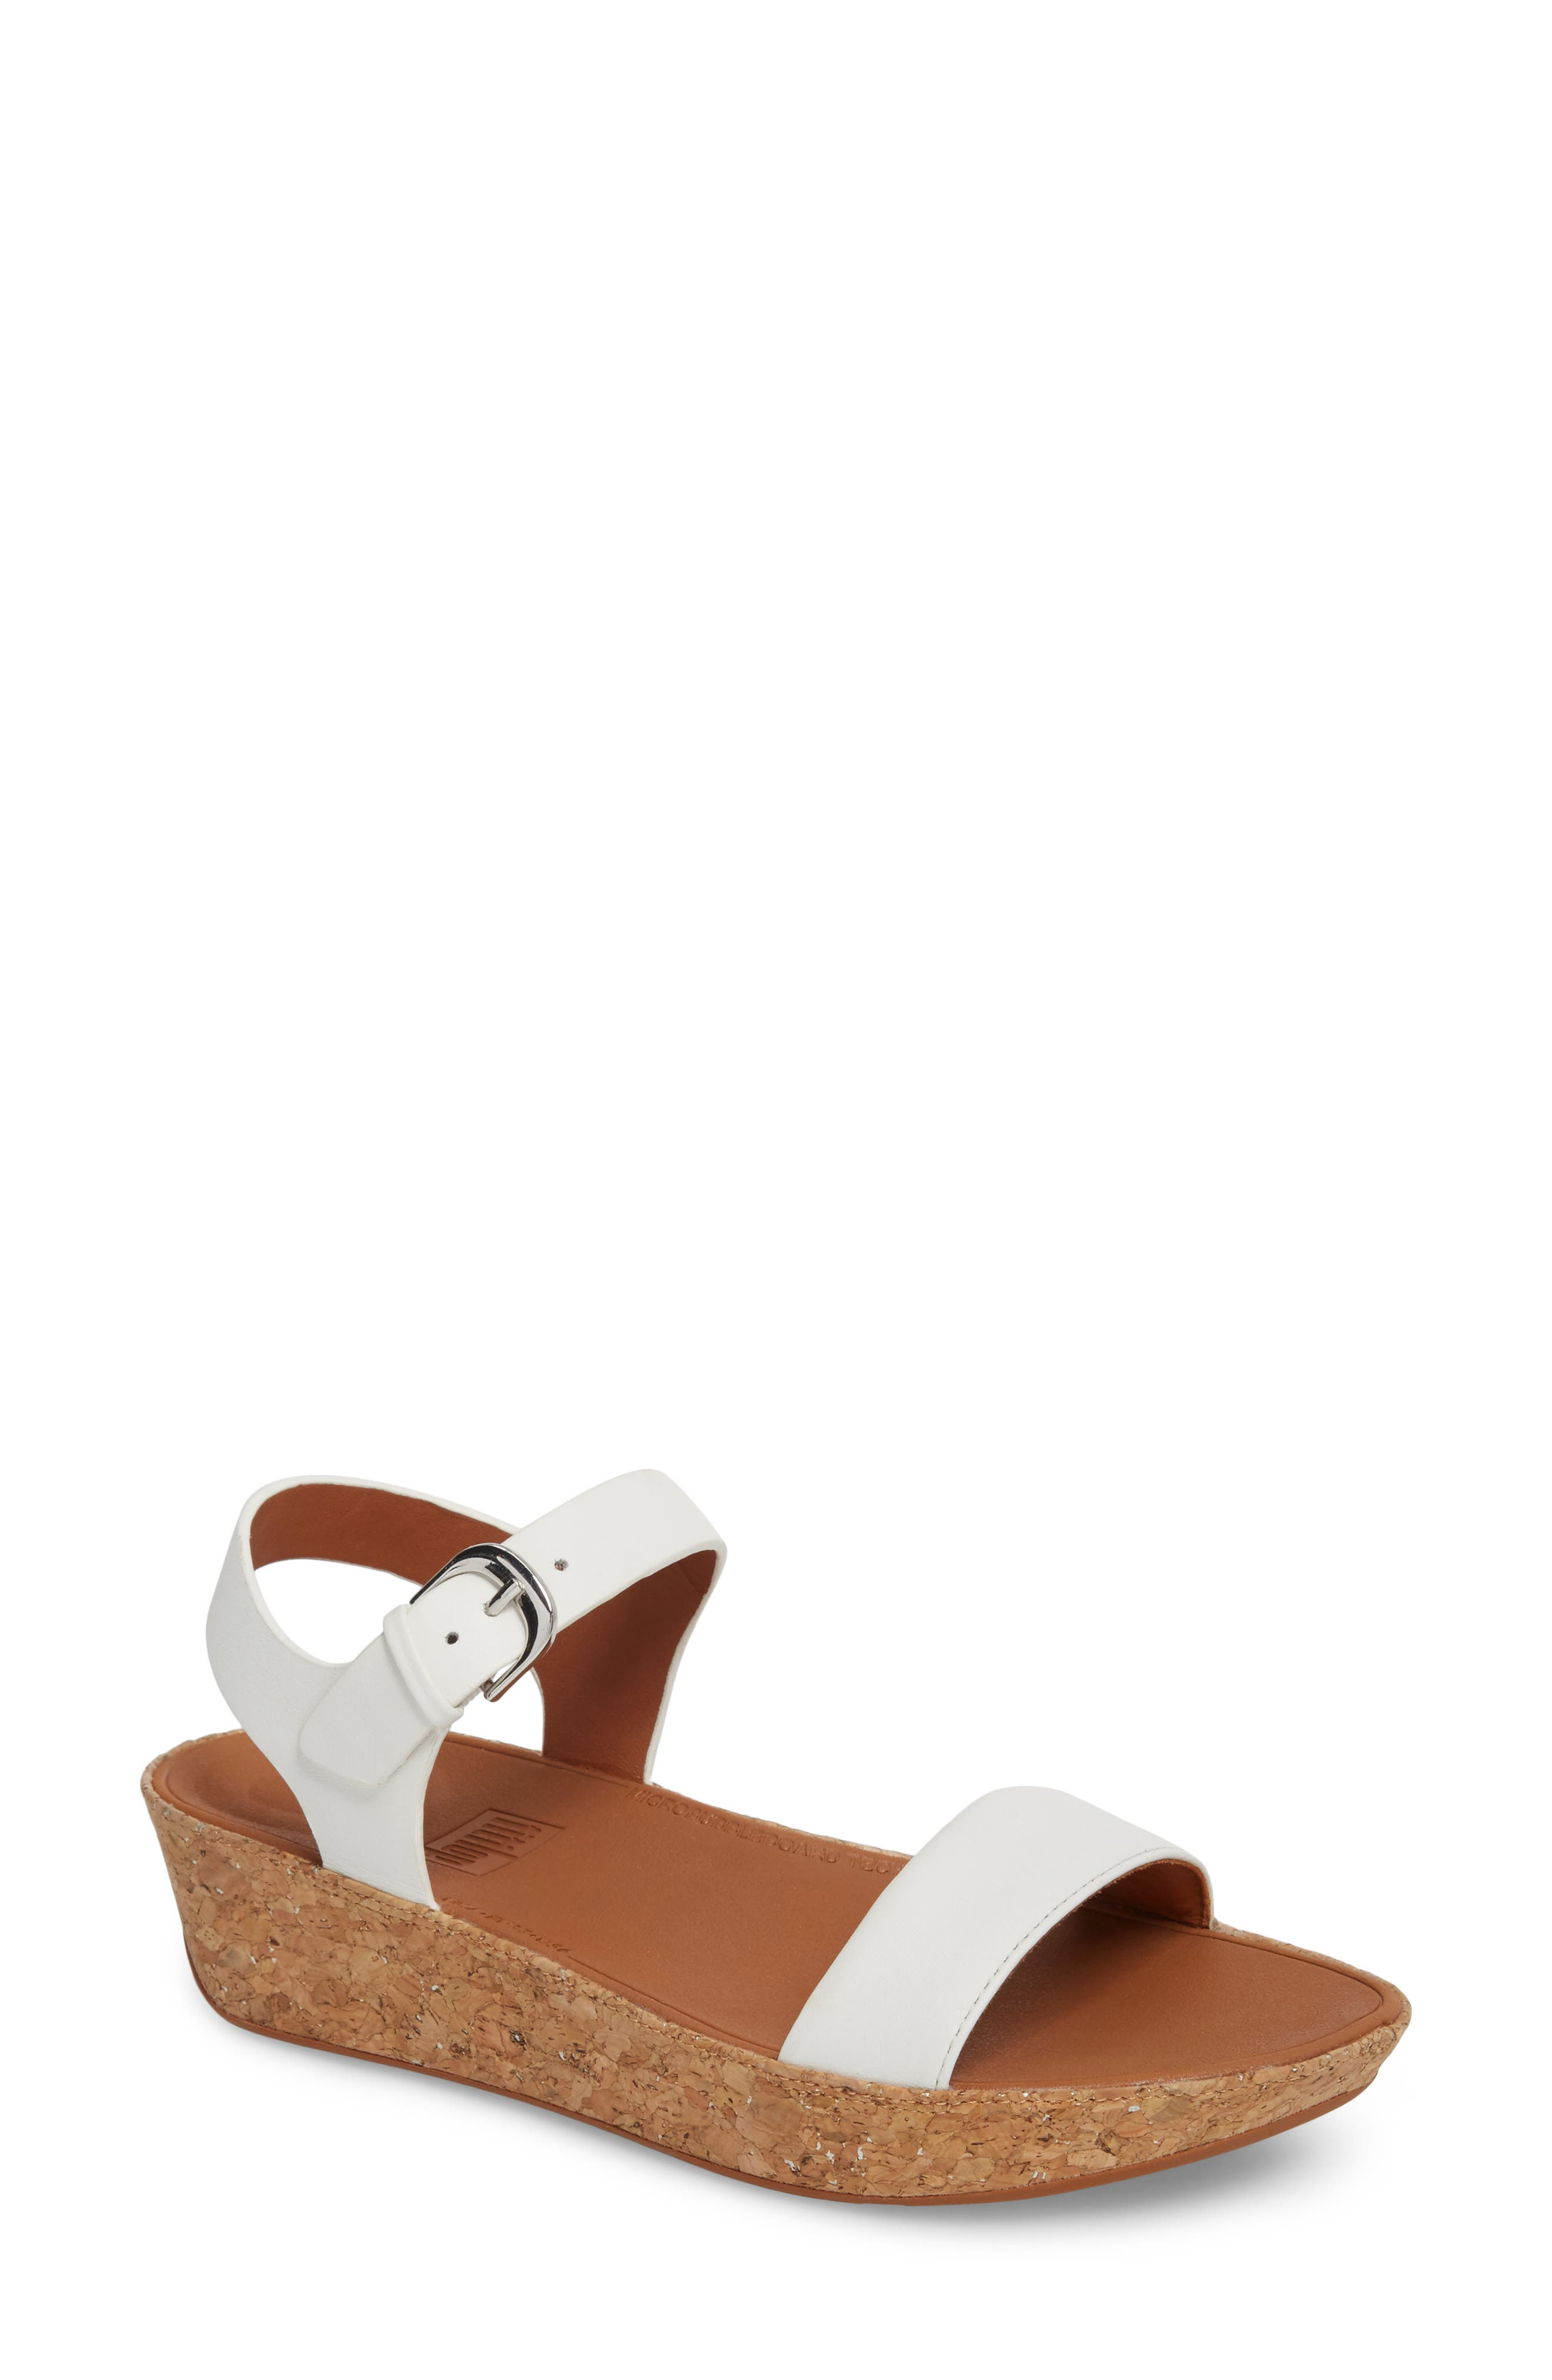 Bon II Platform Sandal,                         Main,                         color, Urban White Leather